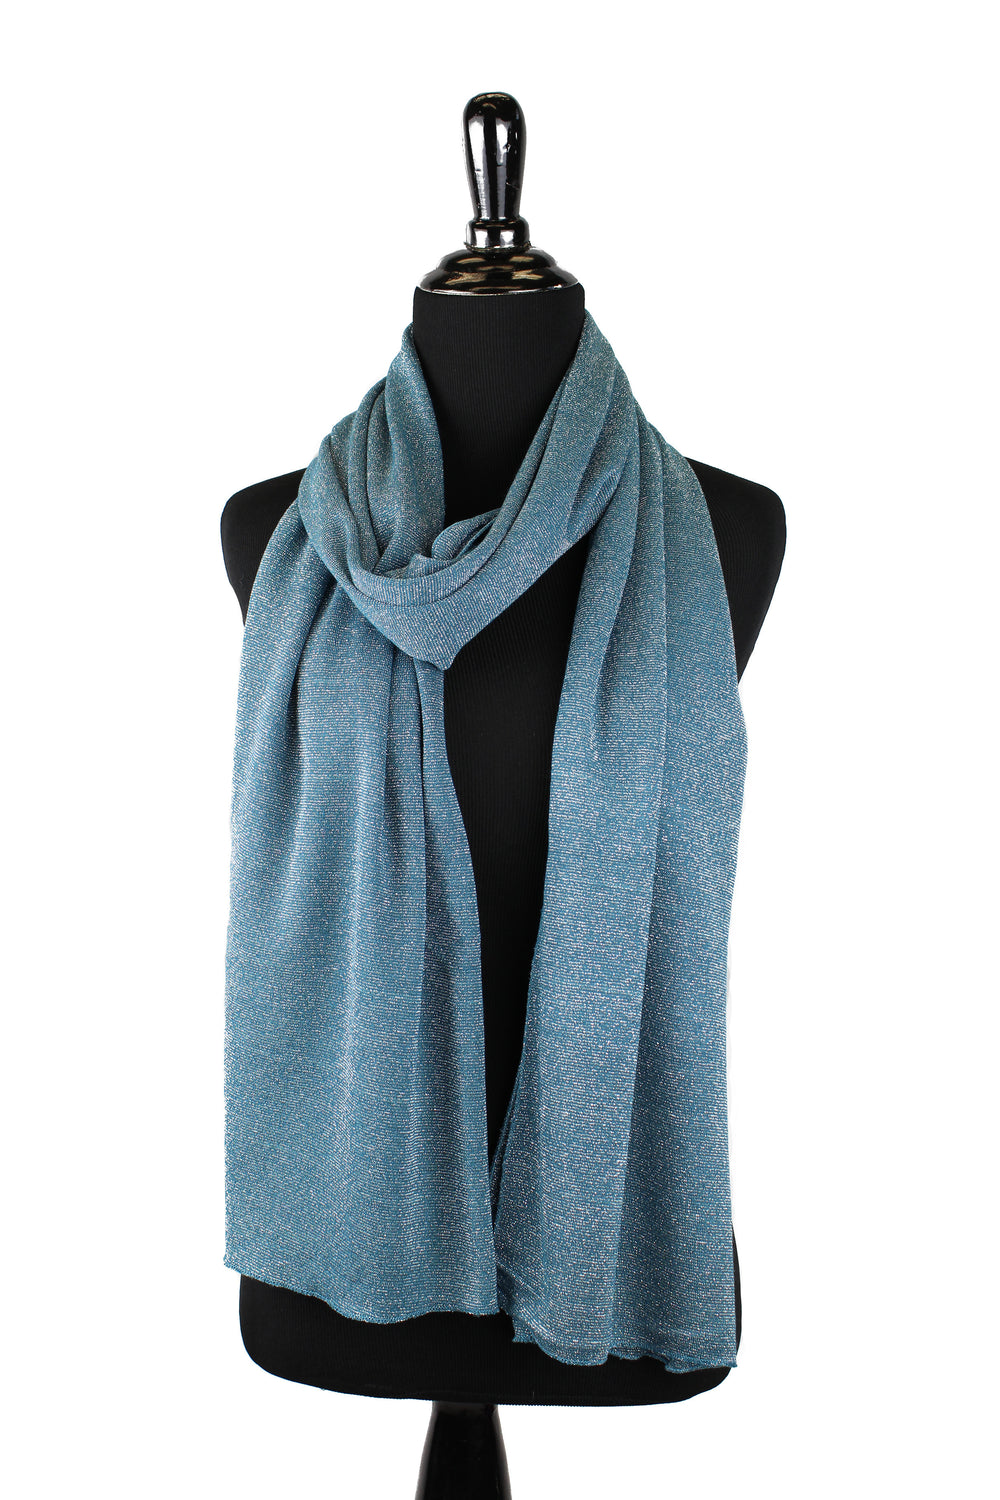 Shimmer Jersey Hijab - Teal